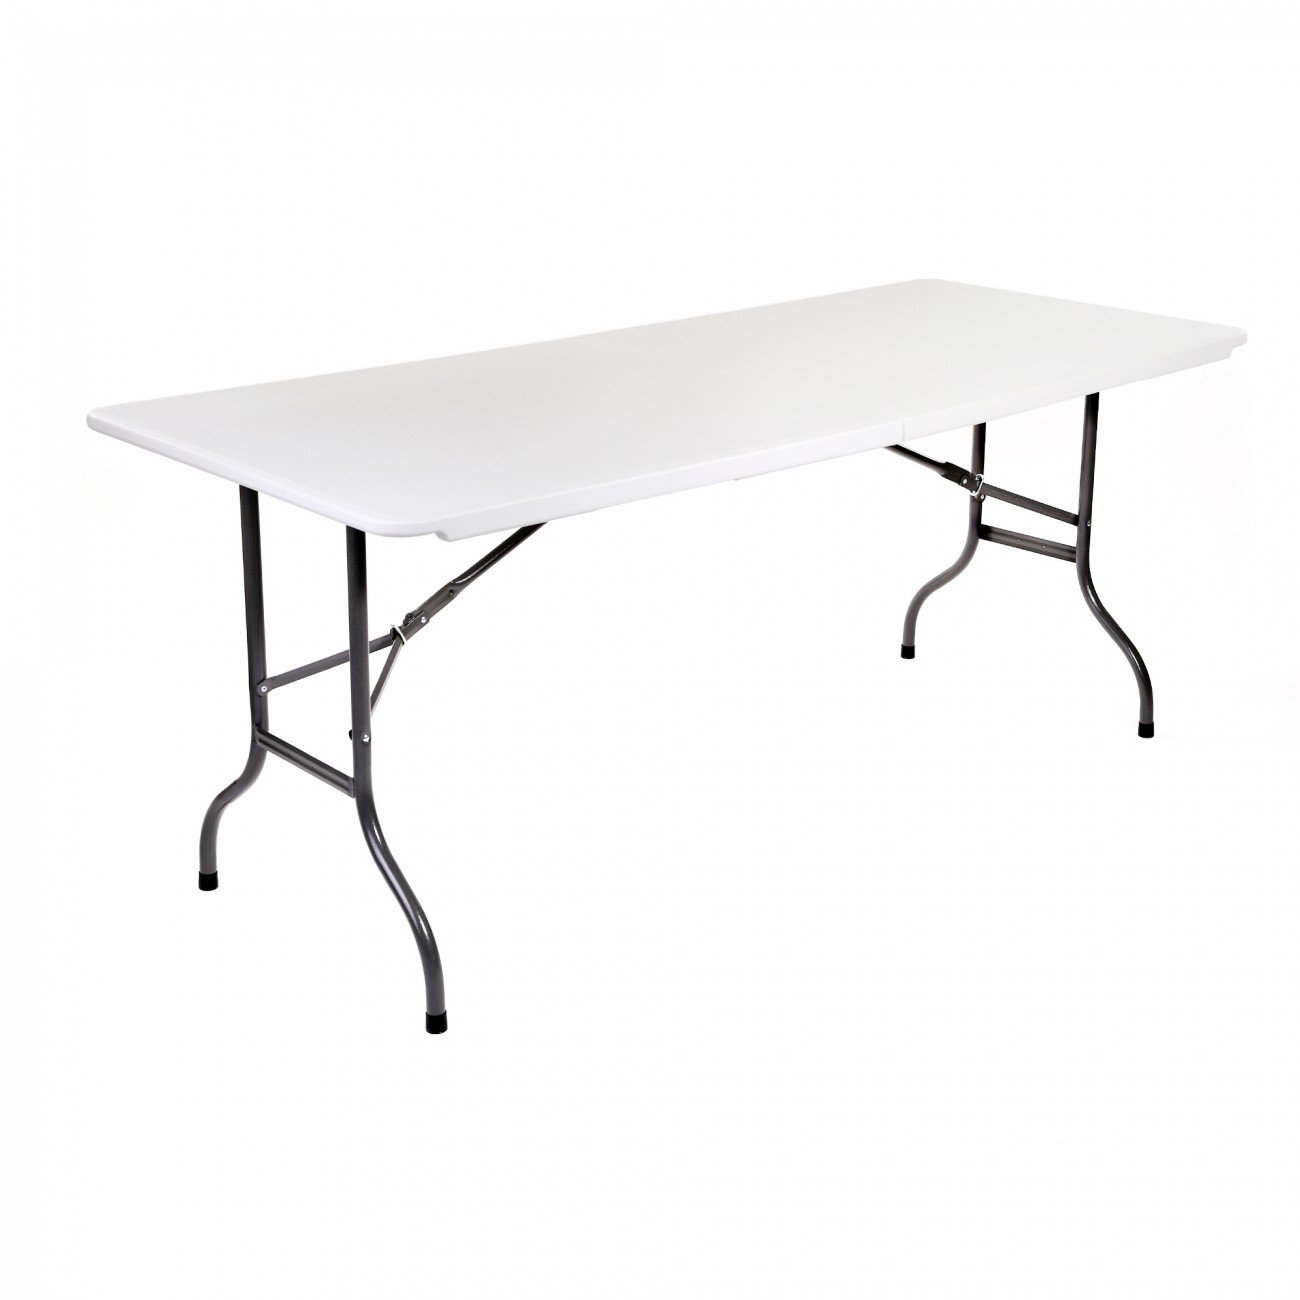 Acheter table pliante table pliable table rabattable table - Table roulante de jardin ...